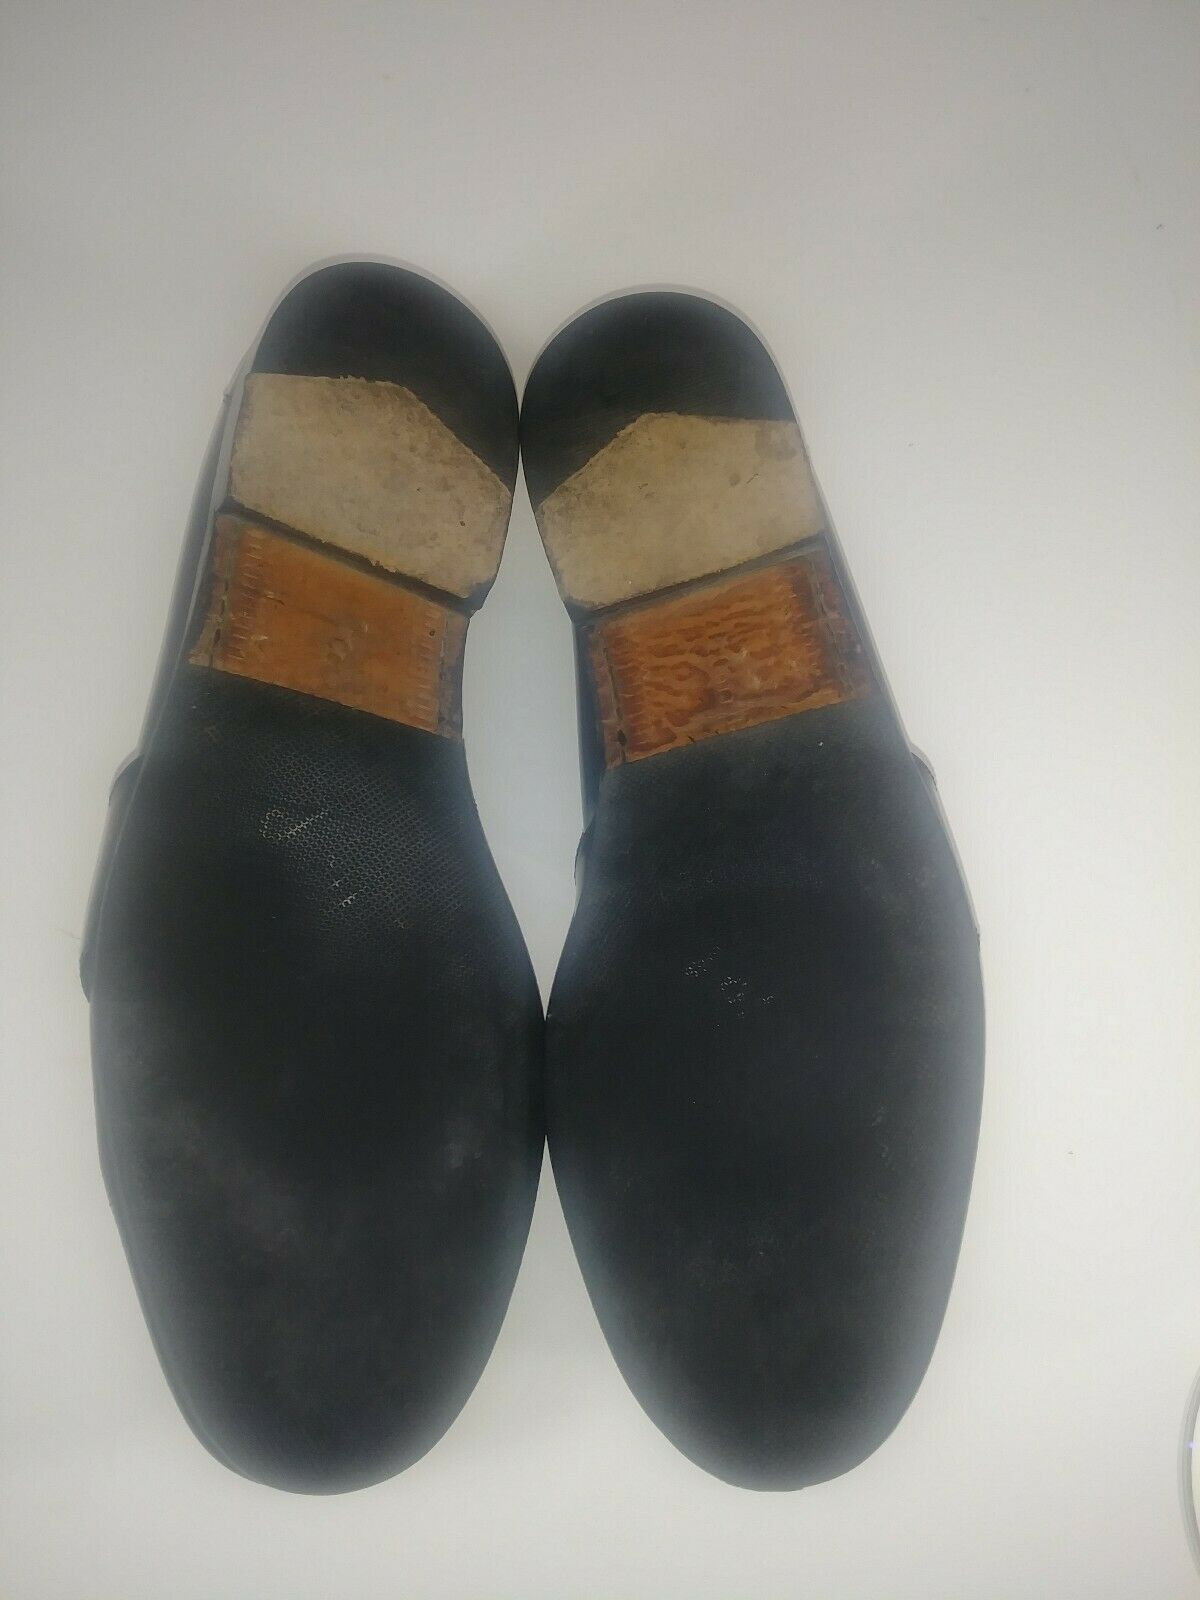 Mens Cole Haan Pinch Penny Dress Shoes Loafers Size 12 MSRP $200 image 6